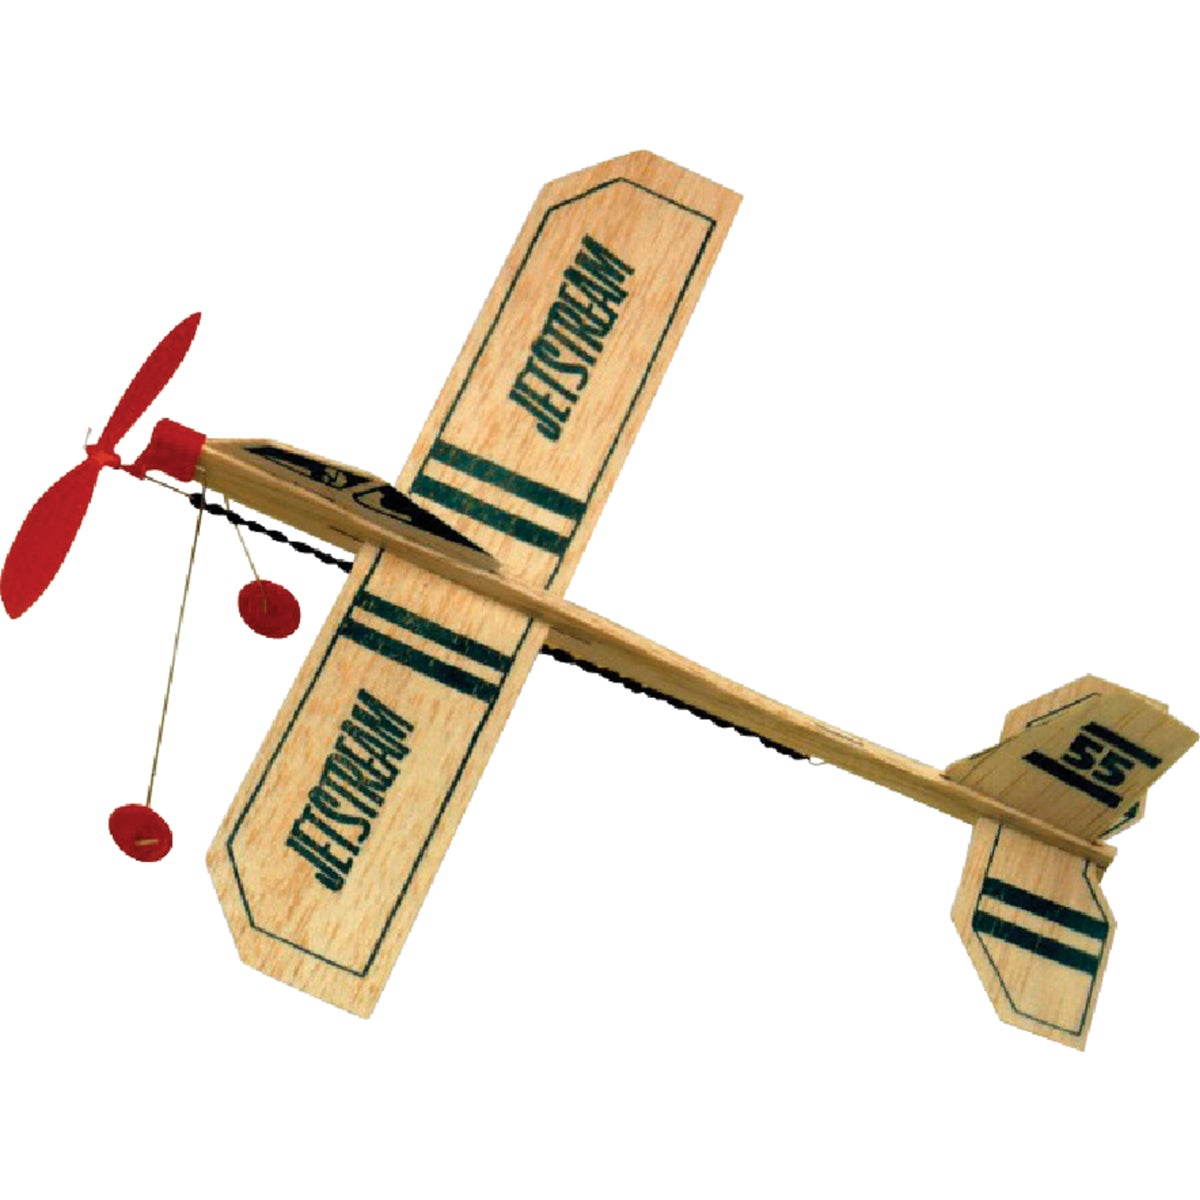 JETSTREAM BALSA AIRPLANE - 55 by Paul K Guillow